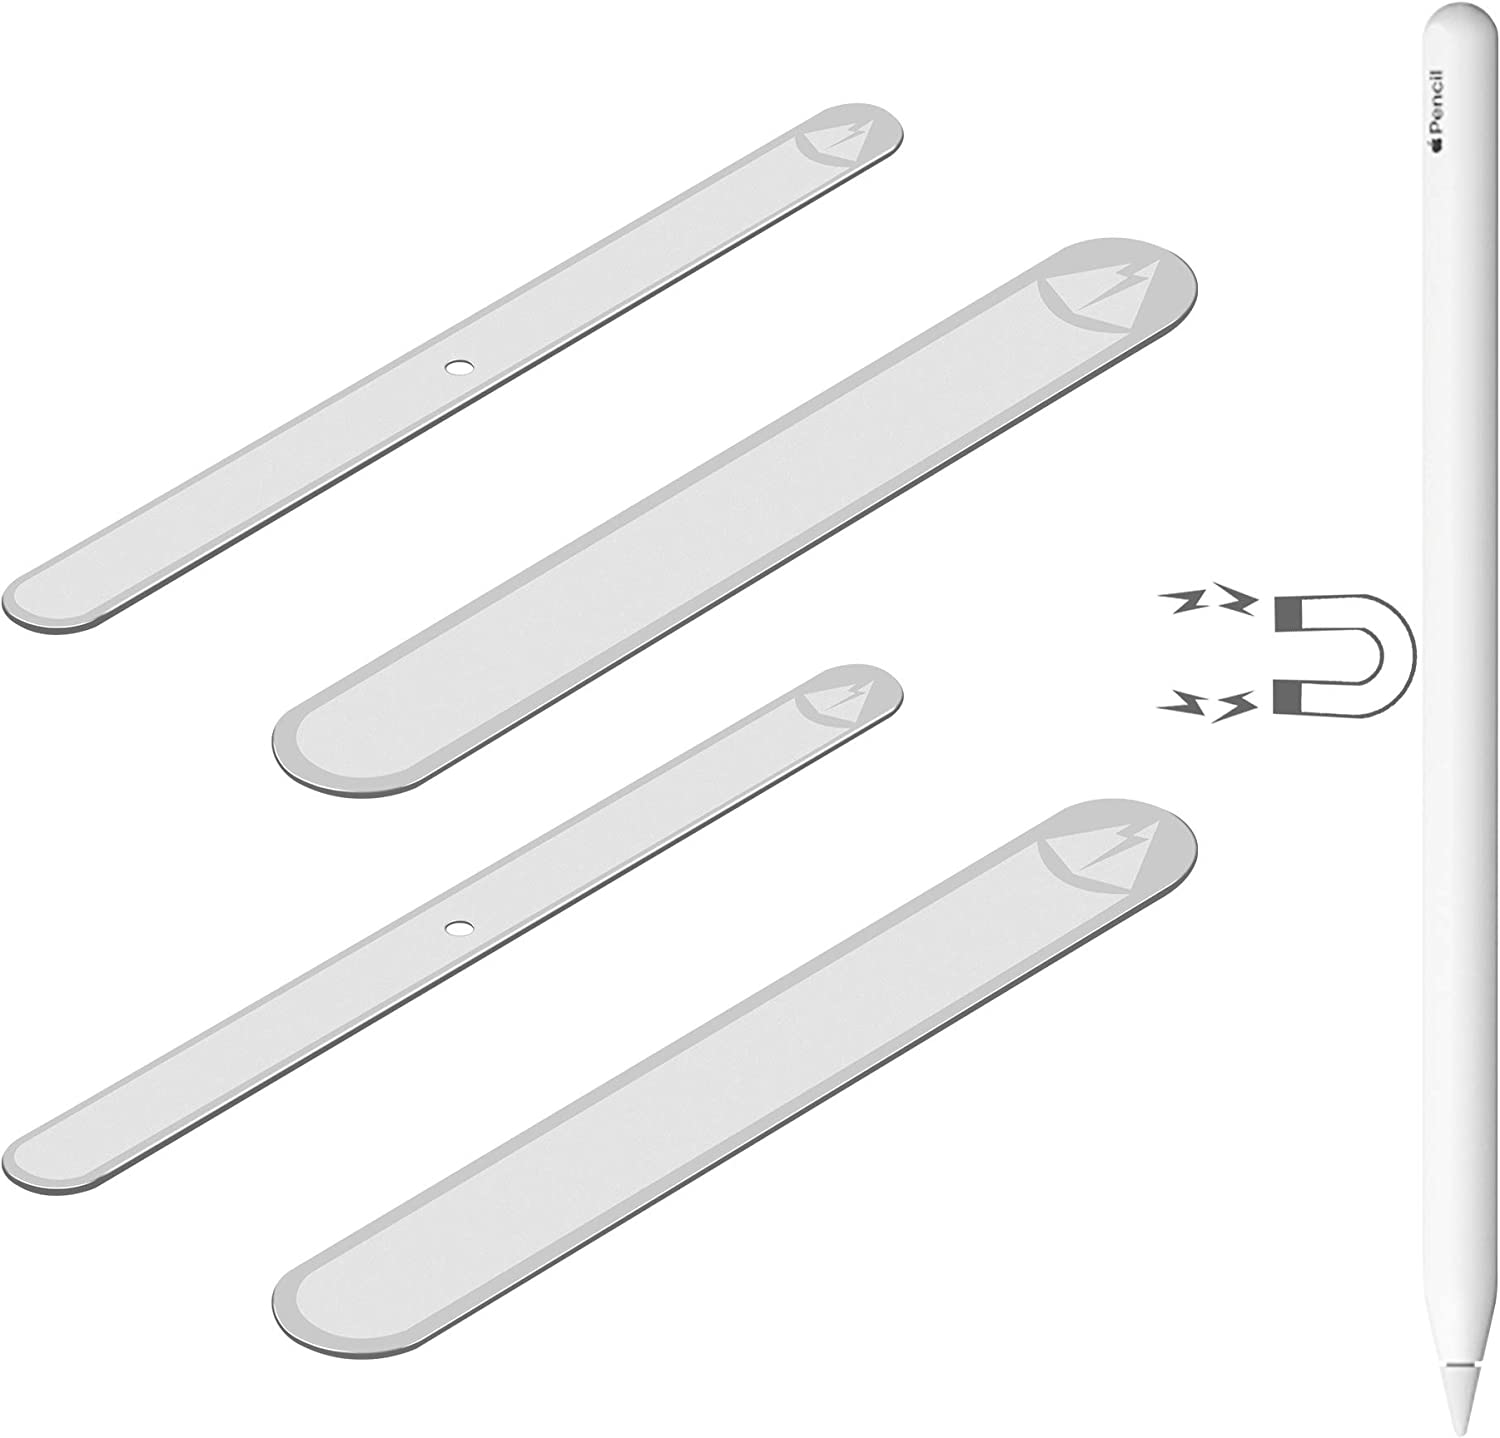 TXEsign Set of 4 Adhesive Metal Plate Compatible with Magnetic Apple Pencil 2nd Generation (2pcs Small & 2pcs Large)